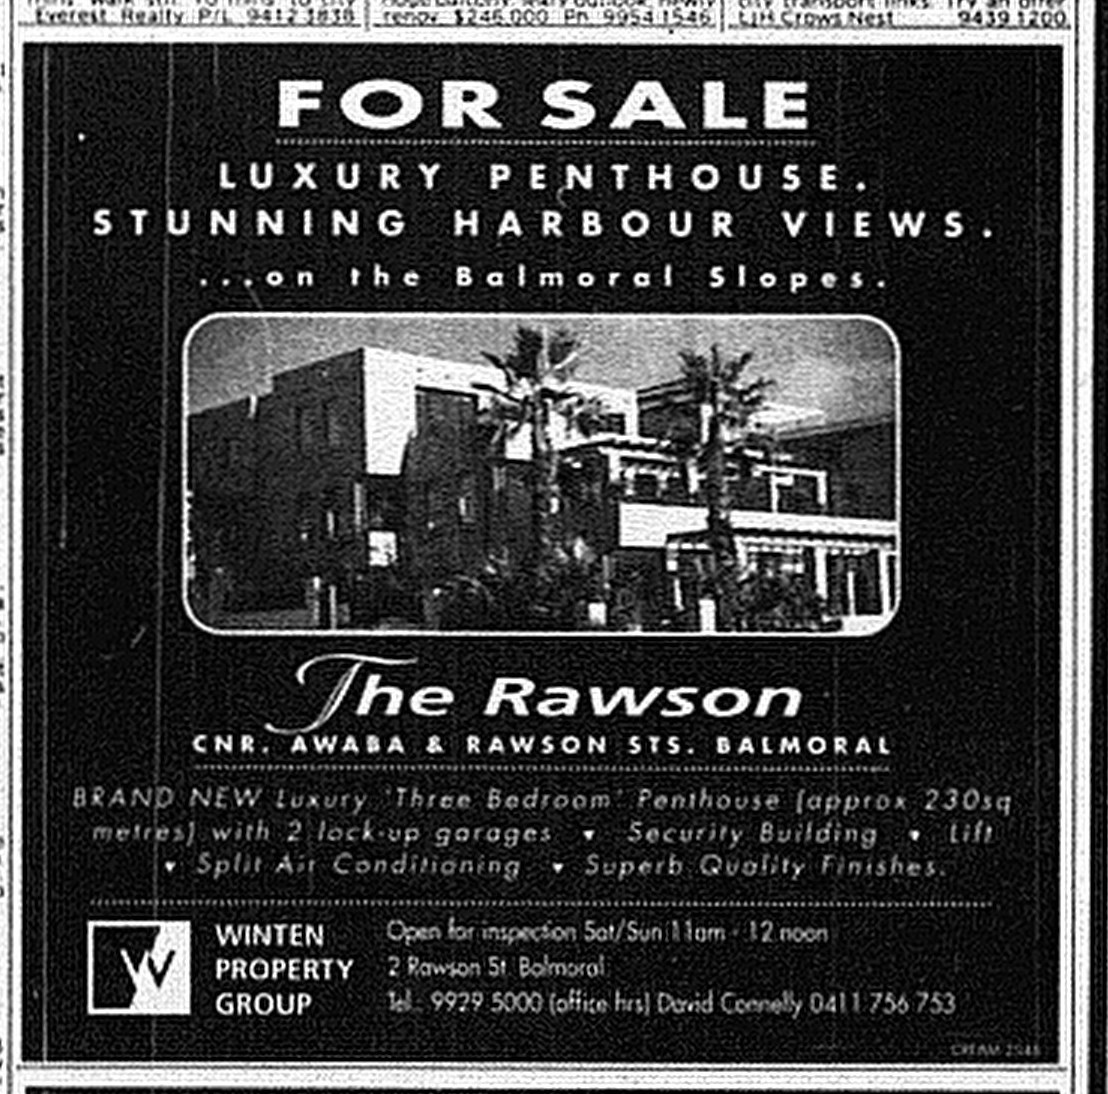 The Rawson Balmoral June 13 1998 SMH10RE